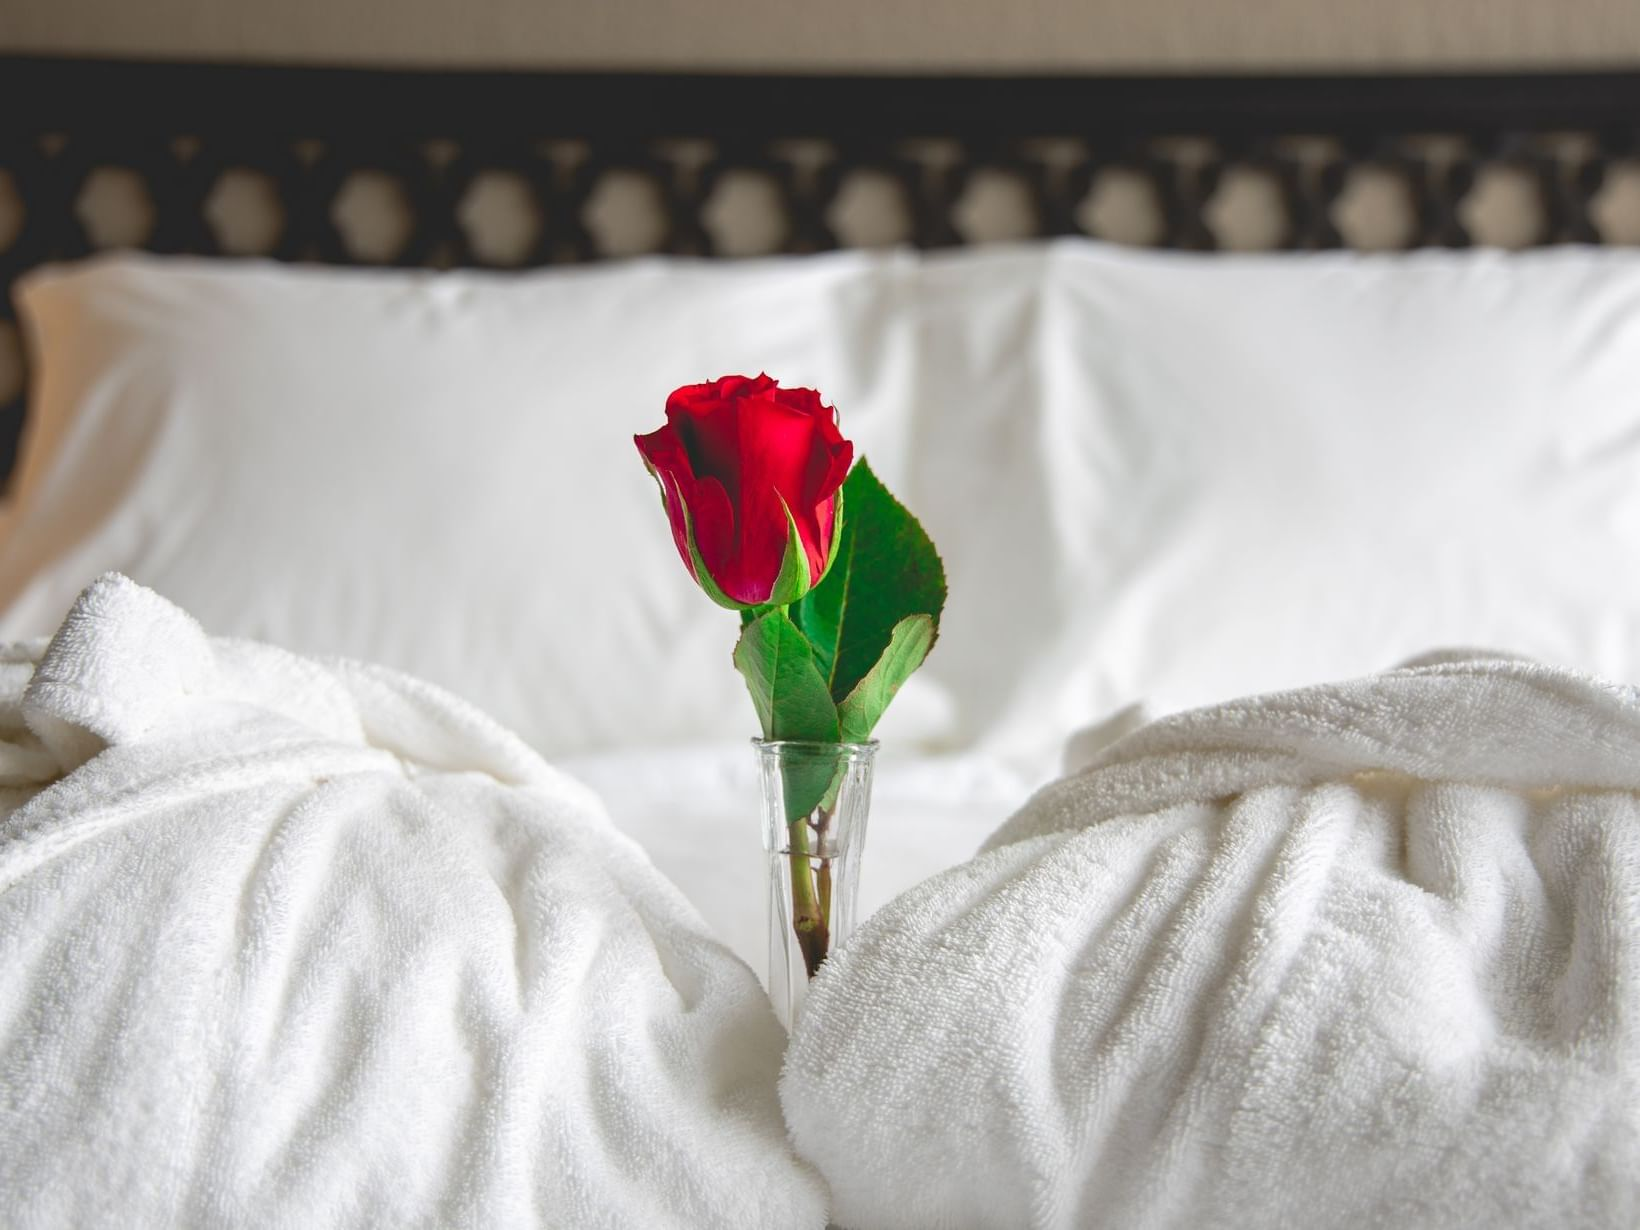 a rose in a vase on a hotel bed